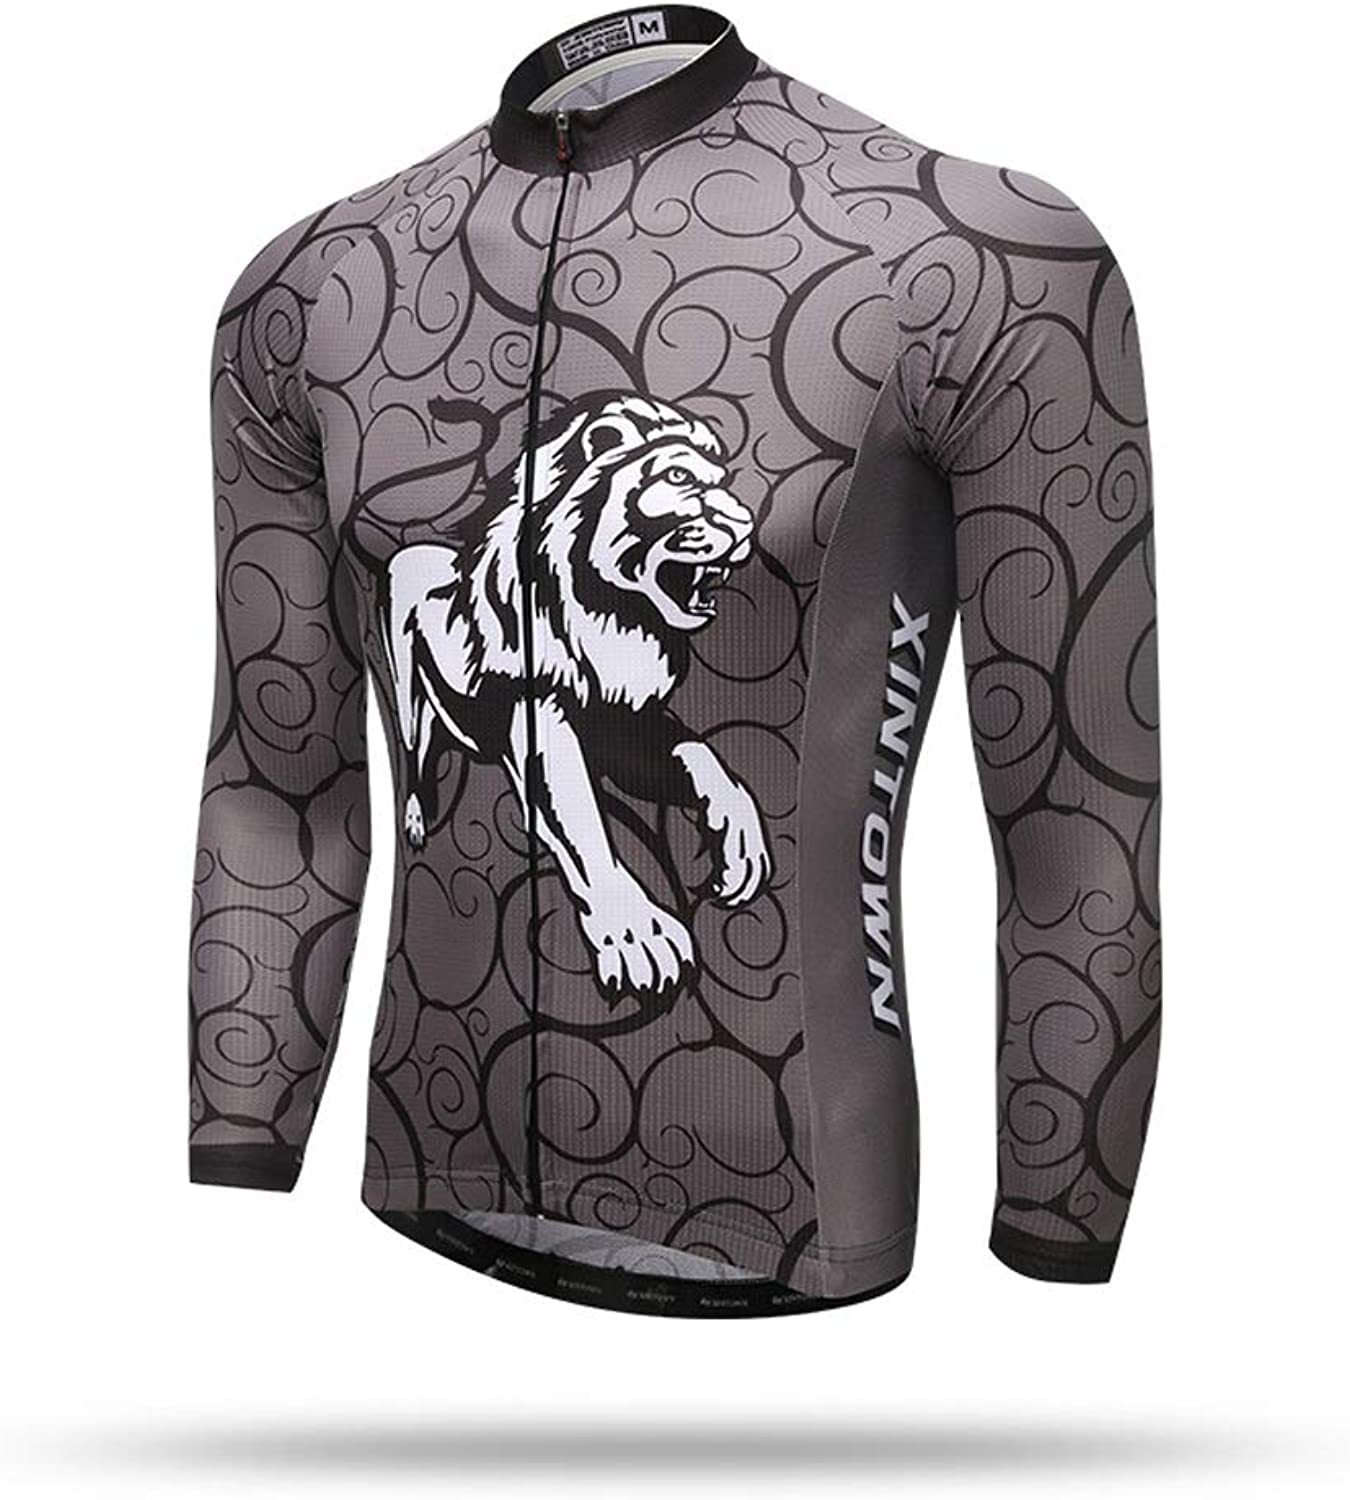 Pinjeer Cool Lion Pattern Printing Breathable Only Shirt Jersey Men Long Sleeve Quick Dry Spring Autumn Outdoor Men's Bike Cycling Jersey Clothing (Size   S)